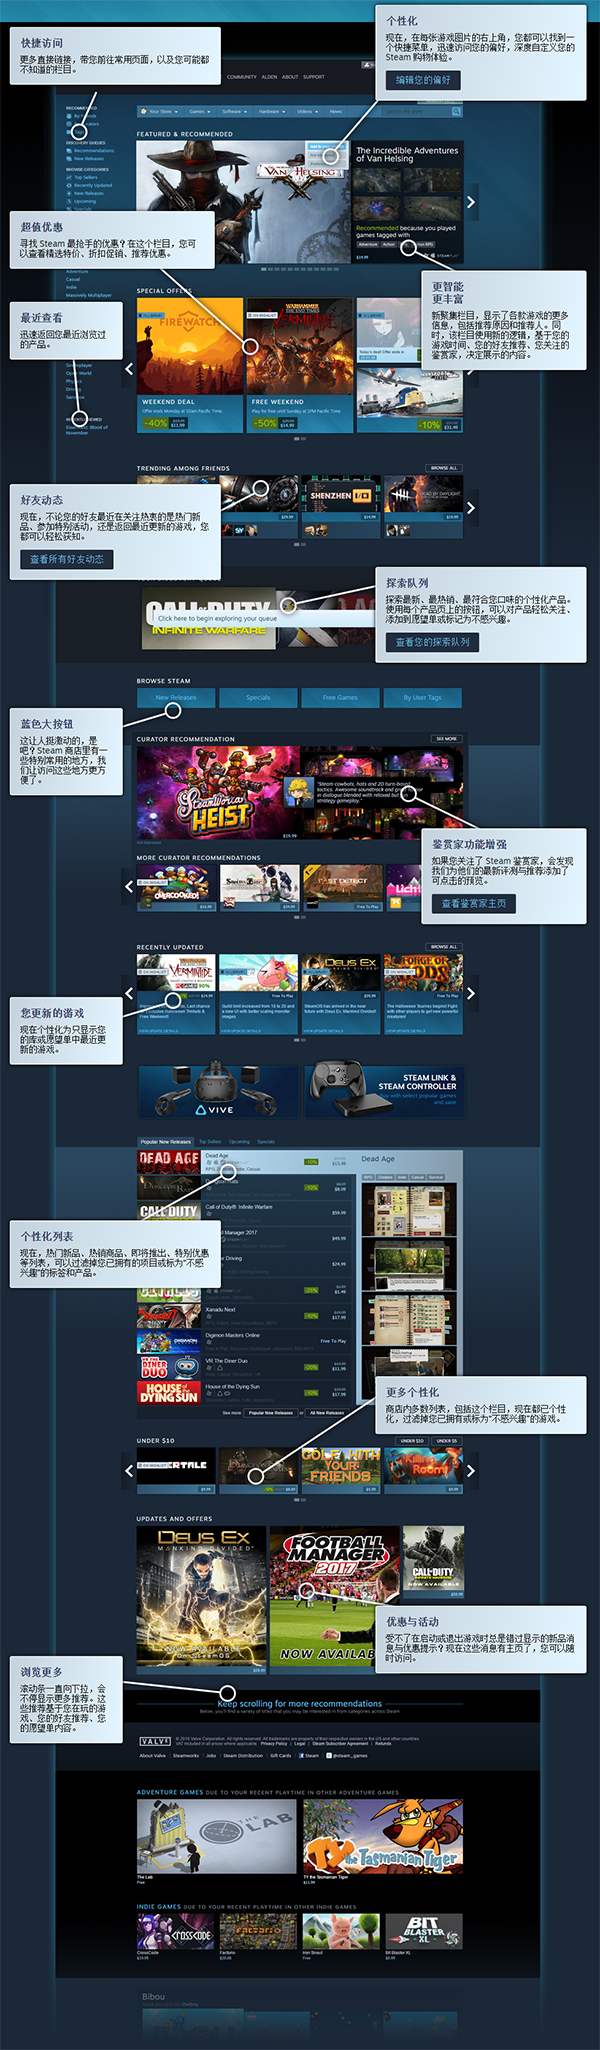 steamUI2.0官方介绍图